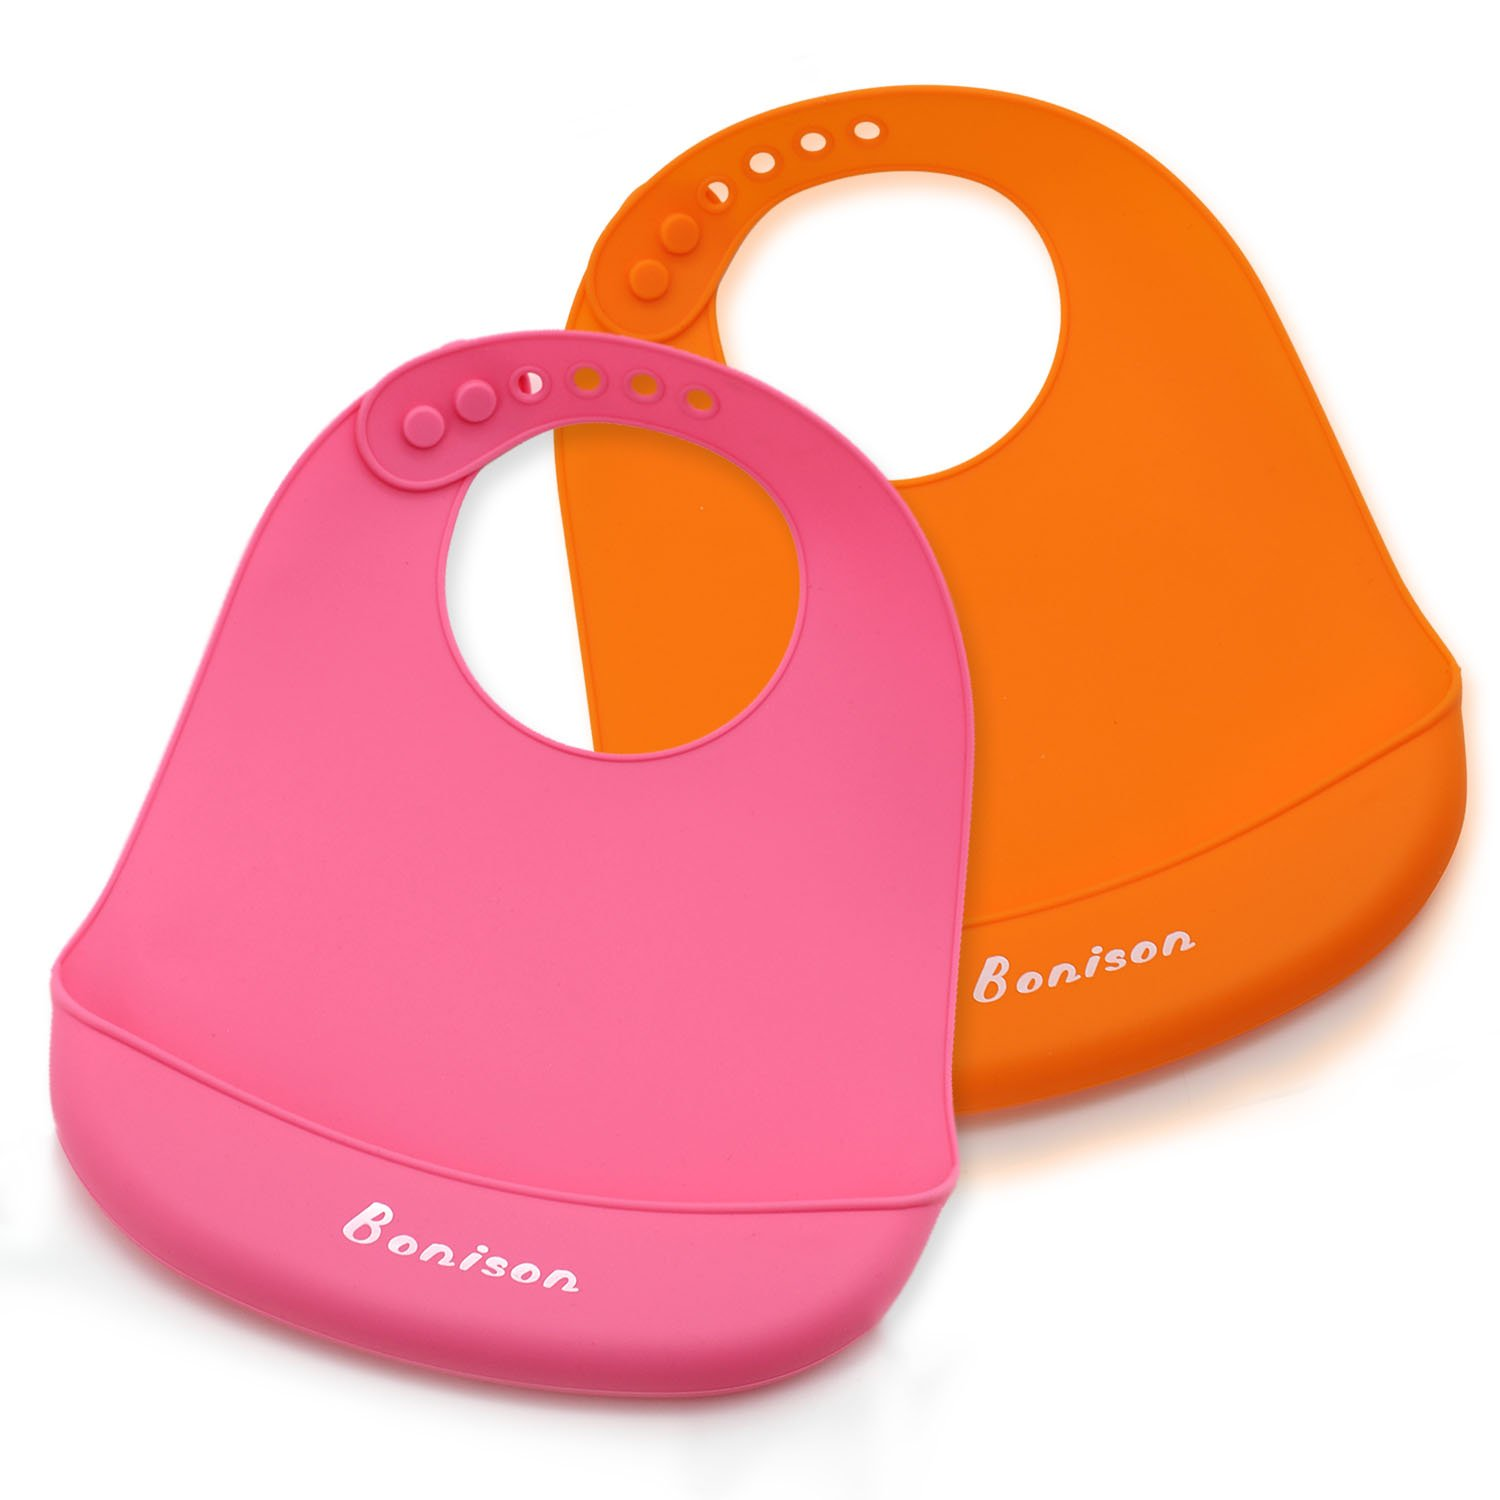 Bonison Waterproof Silicone Bib Easily Wipes Clean! Comfortable Soft Baby Bibs Keep Stains Off! Spend Less Time Cleaning After Meals with Babies or Toddlers!